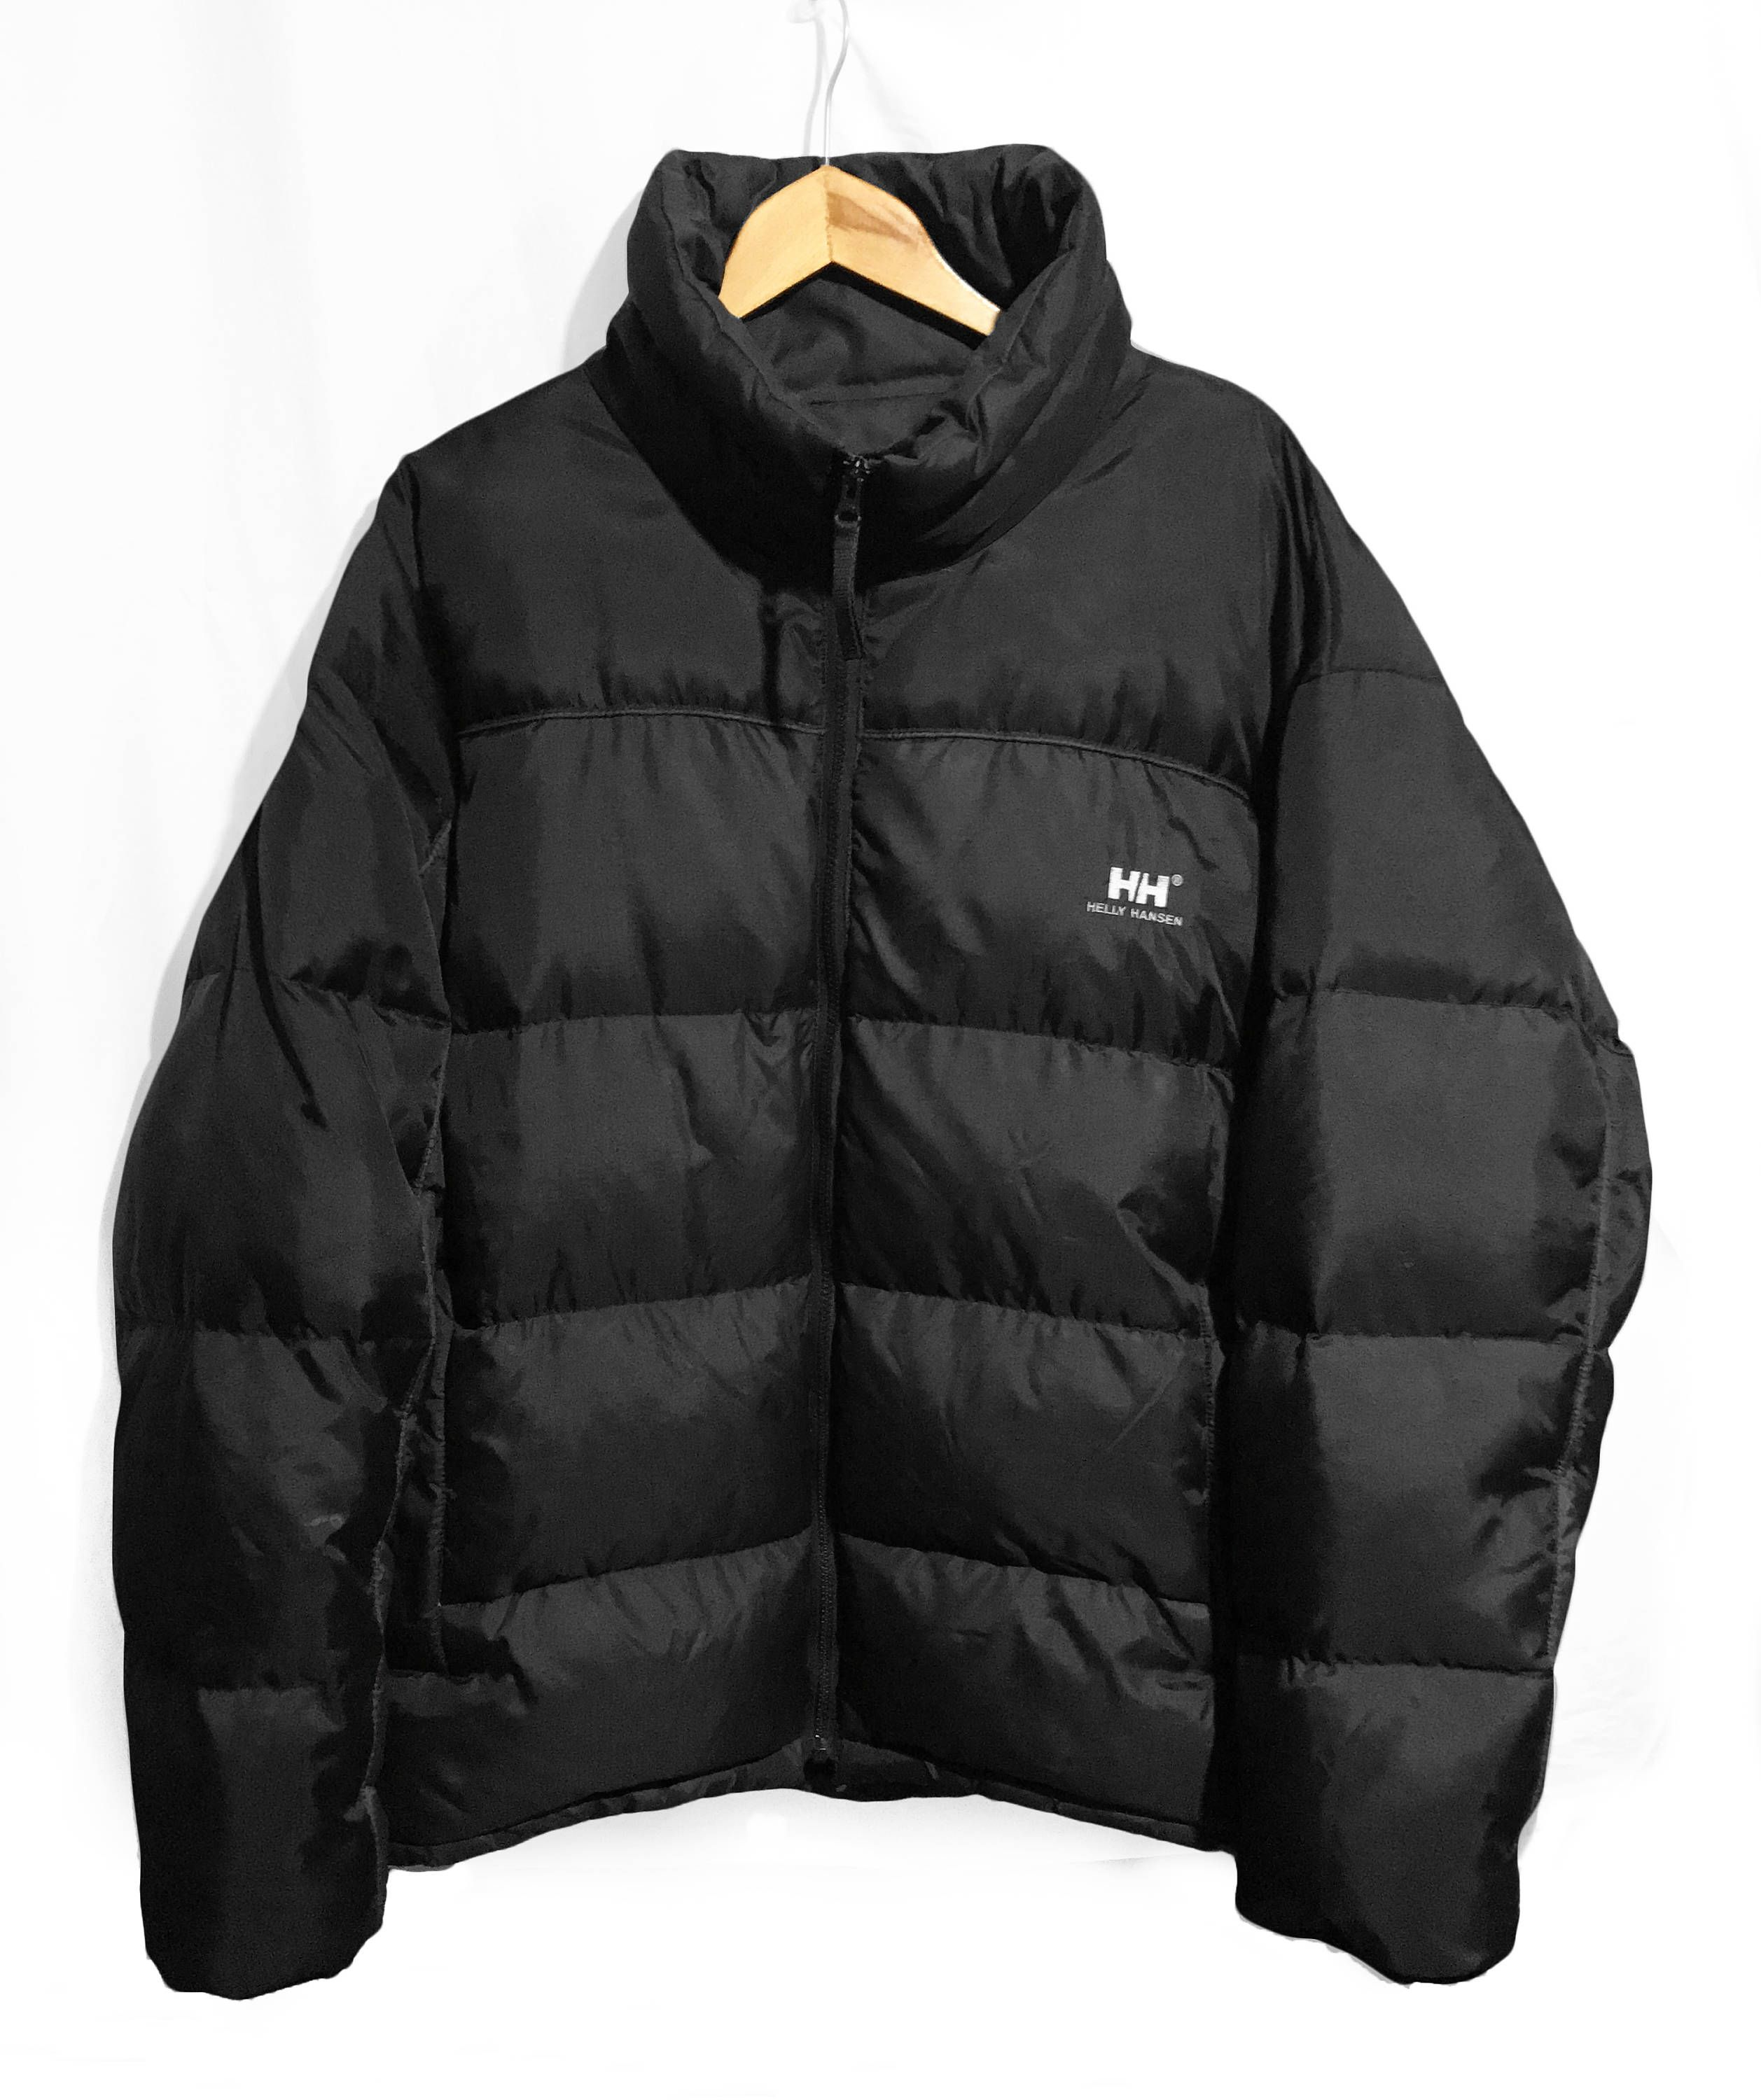 Goose Down Puffer Jacket Jackets Review